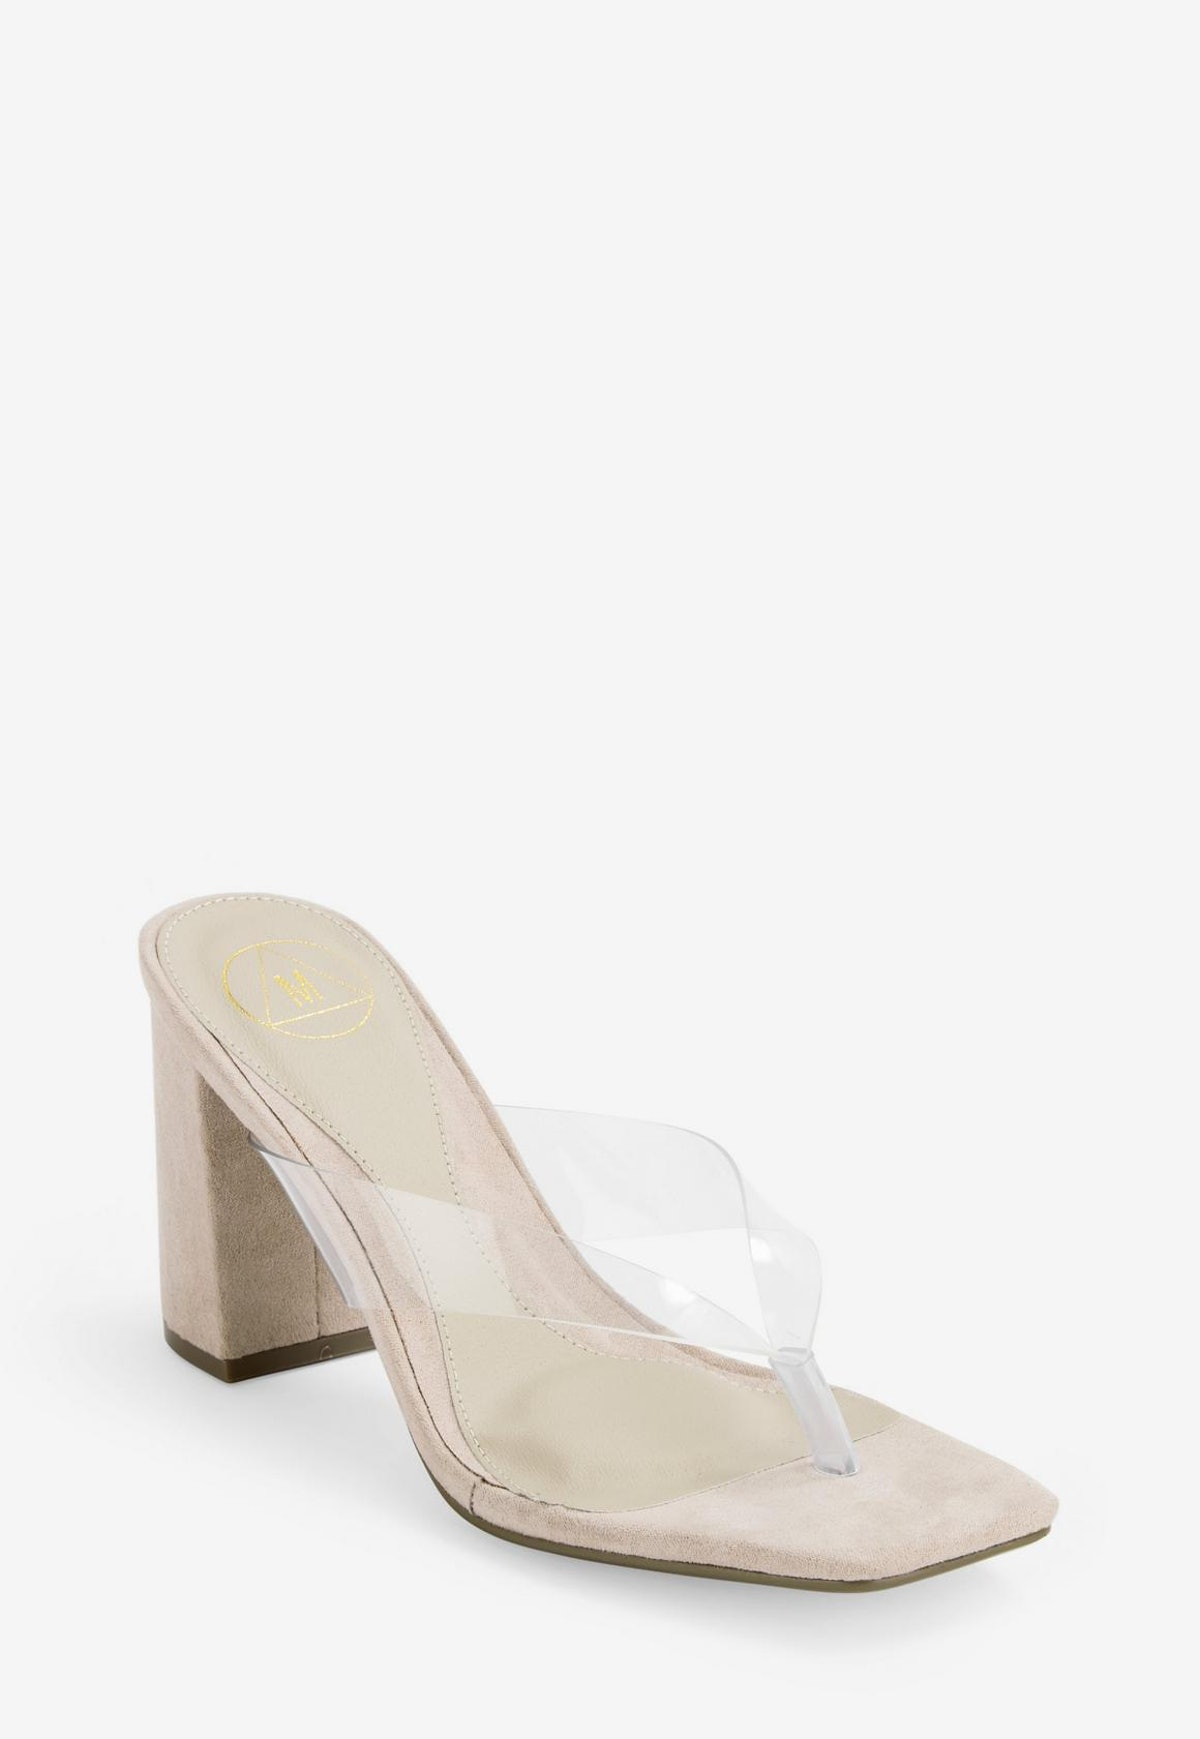 nude clear thong mid heel mules